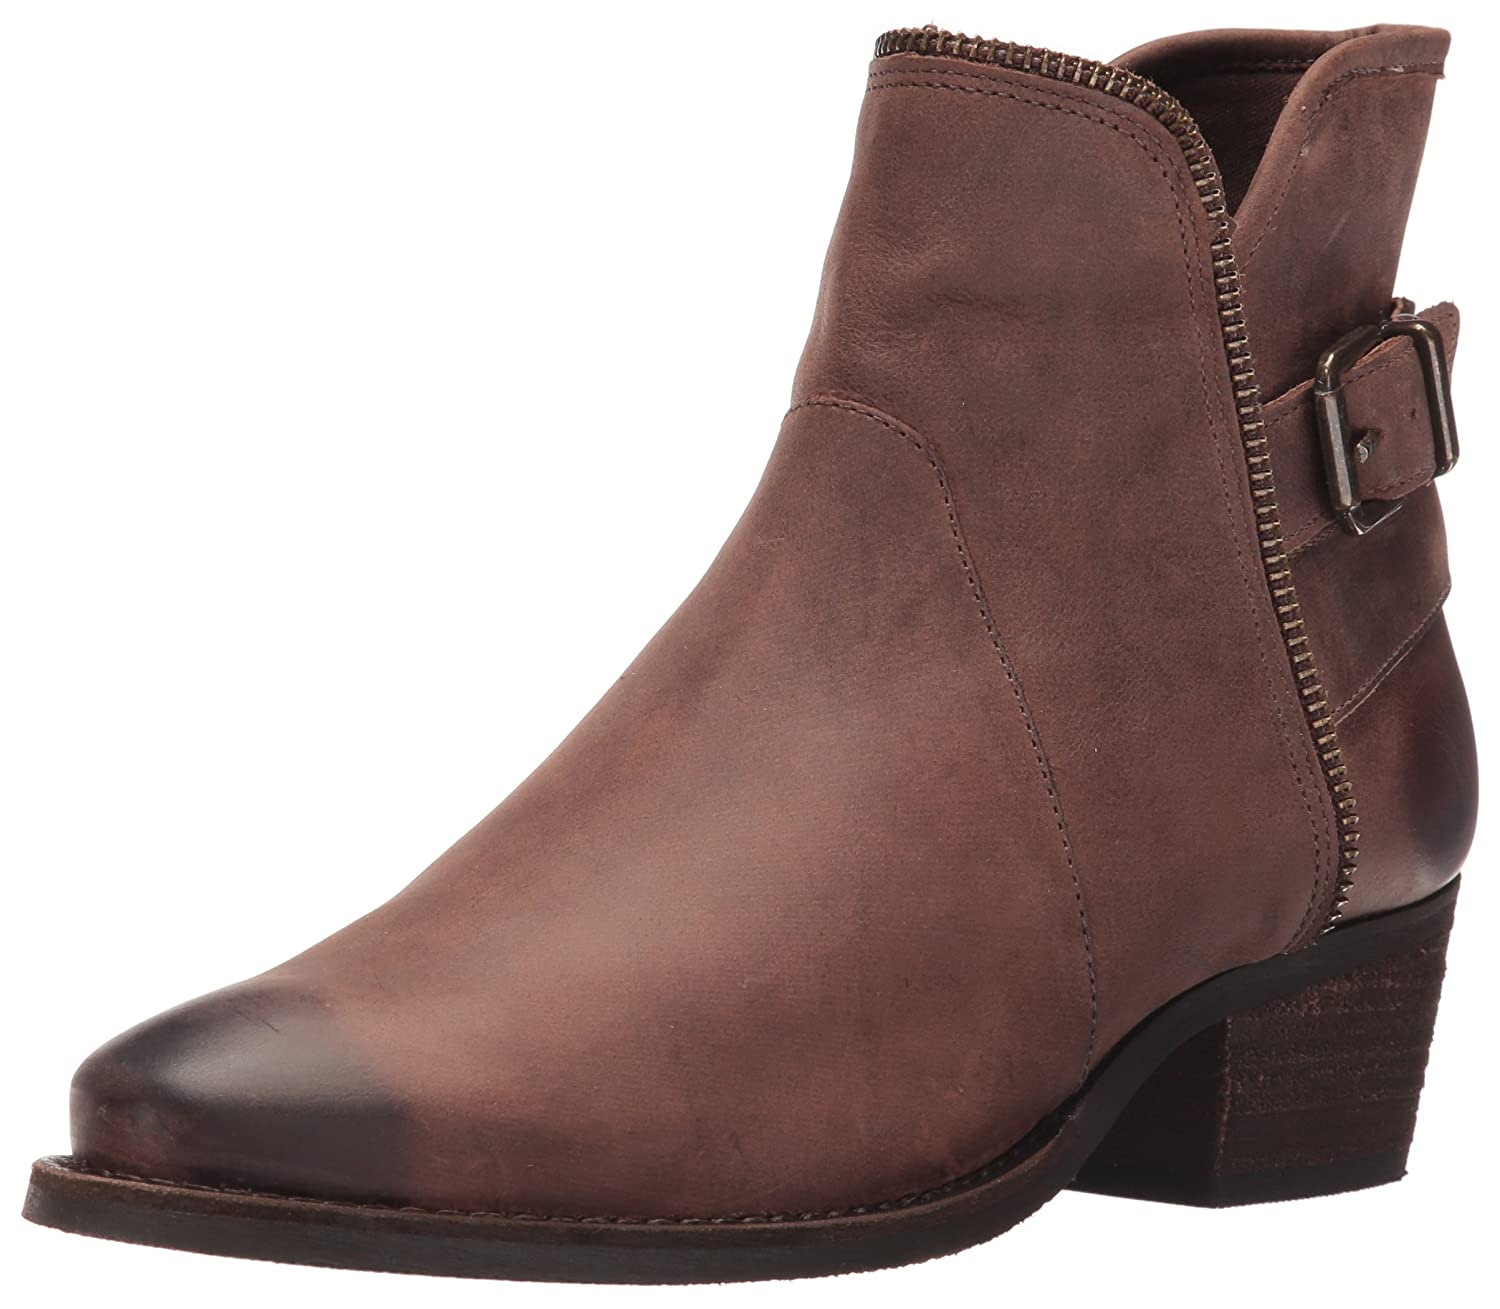 Walking Cradles Women's Gaston Ankle Boot B01BNHJYK0 8 B(M) US|Brown Distressed